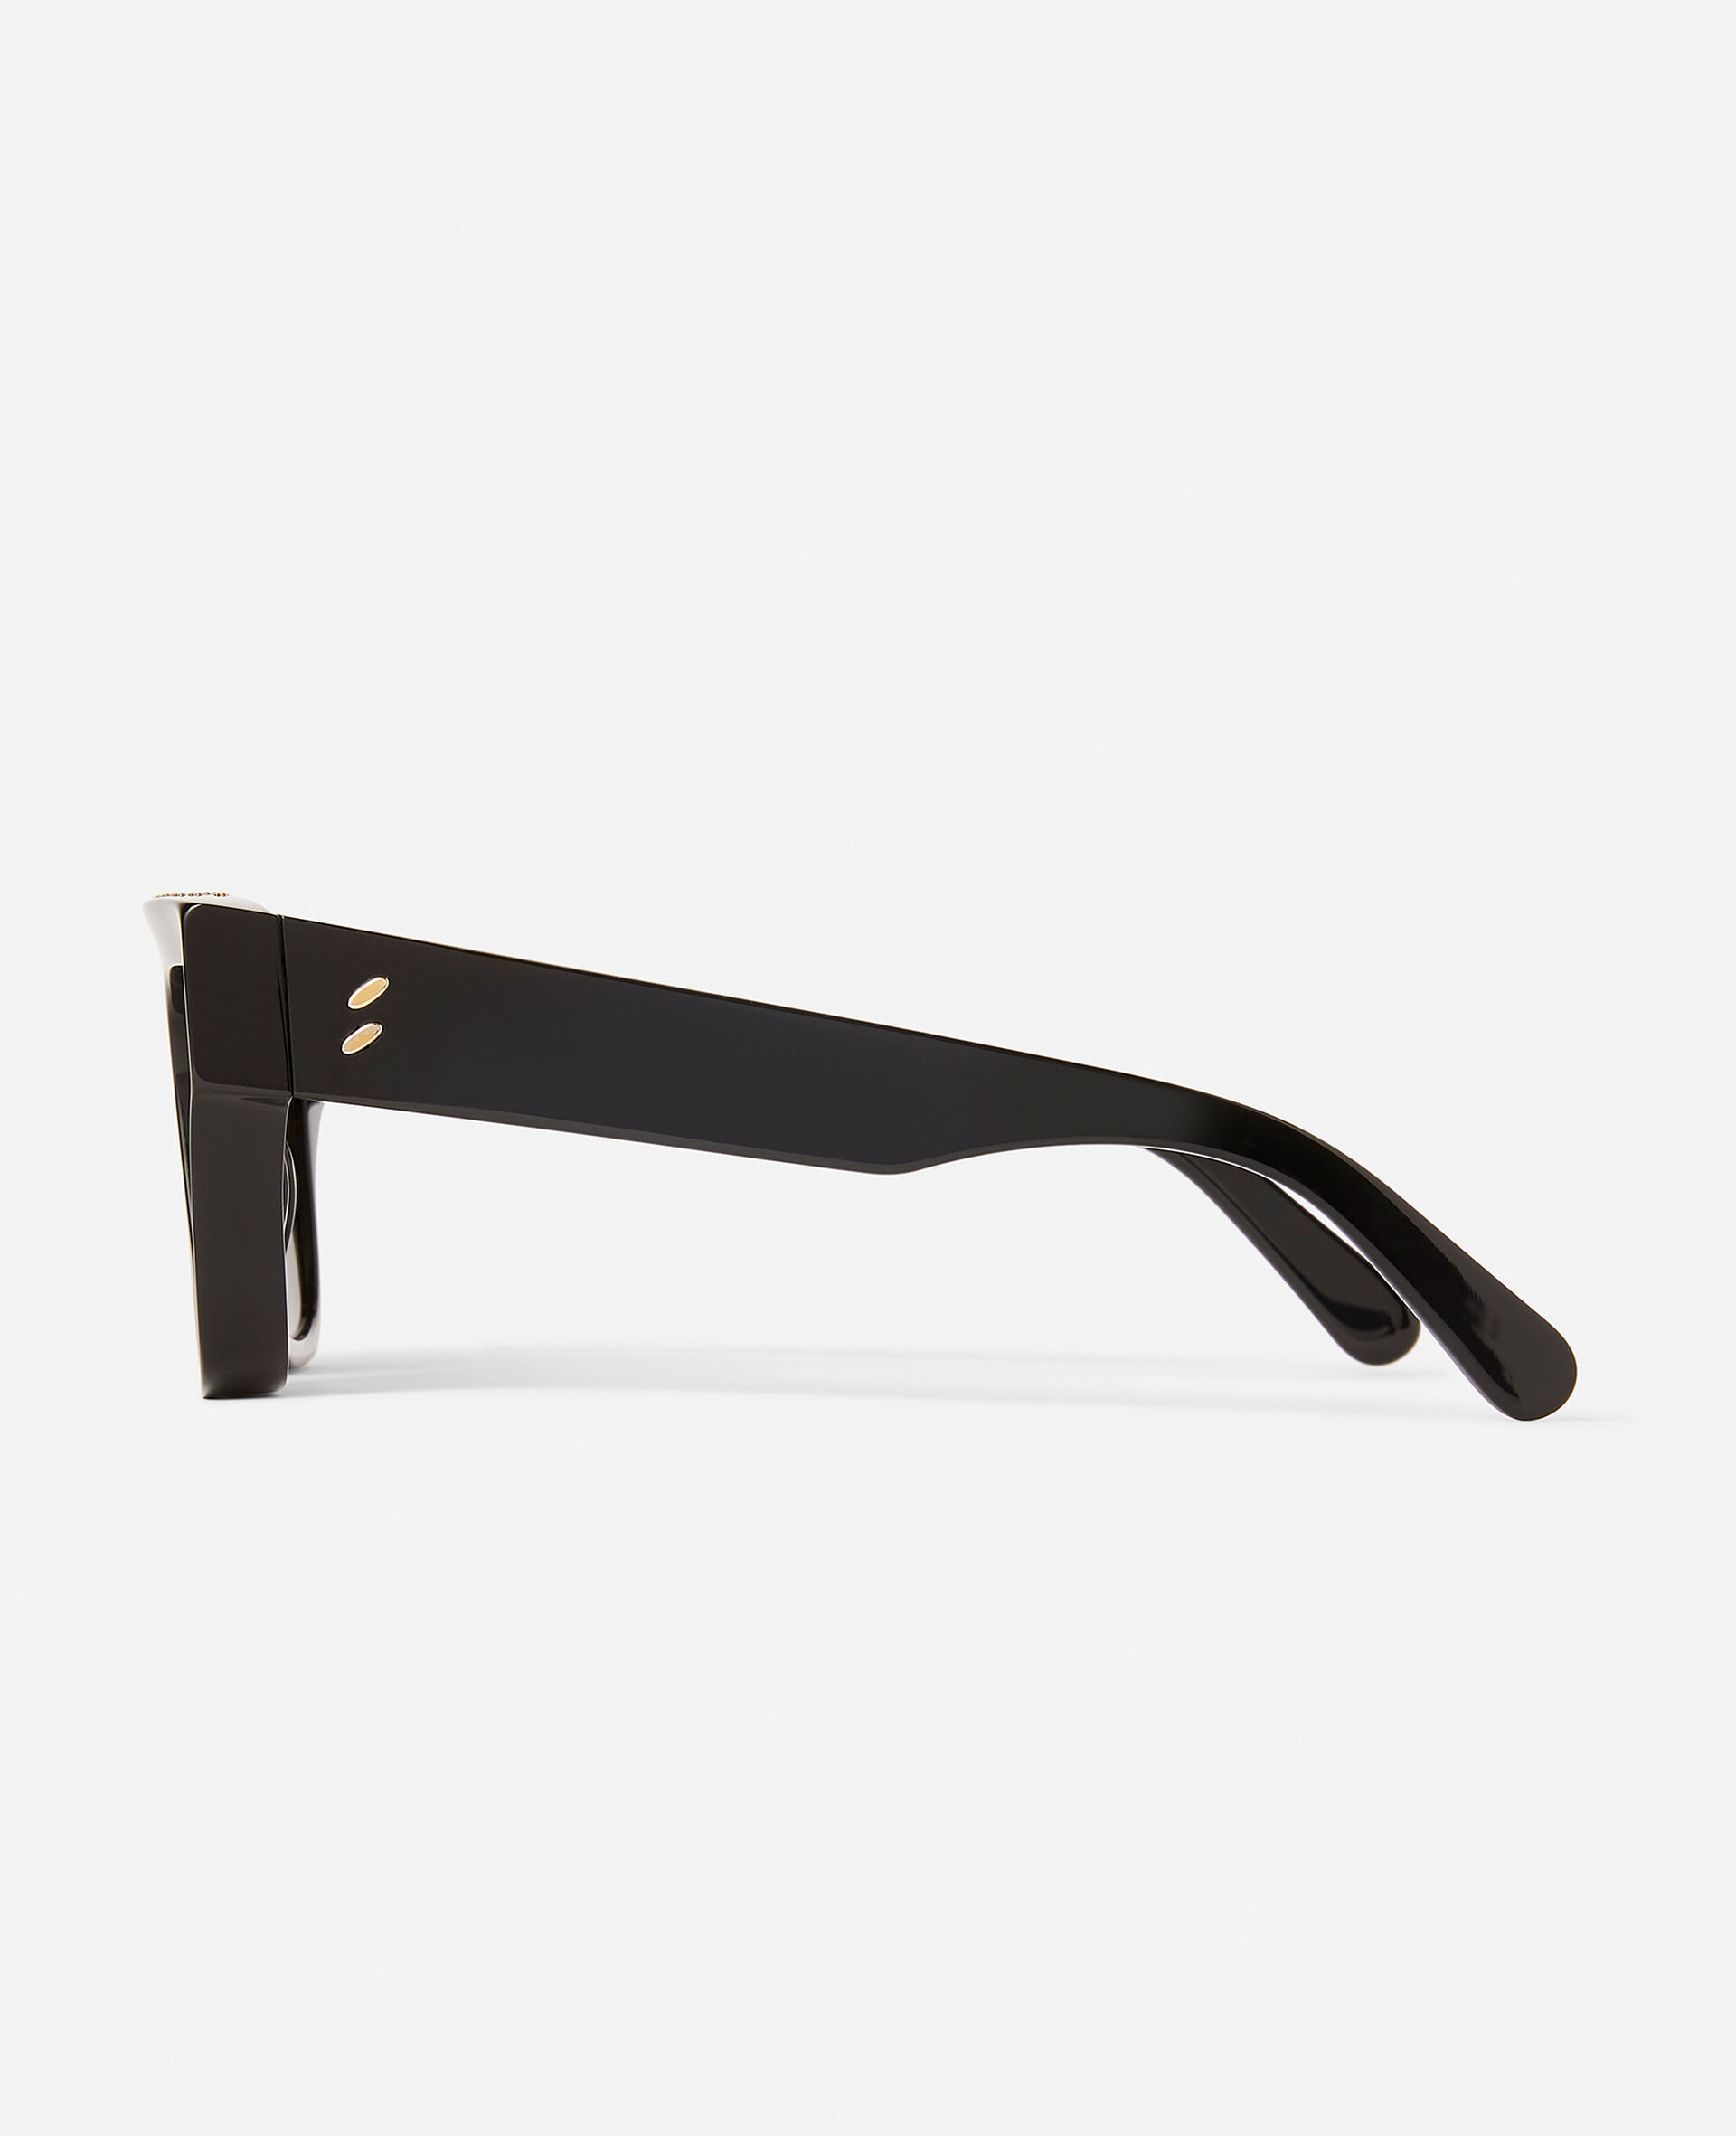 Shiny Black Square Sunglasses-Black-large image number 6